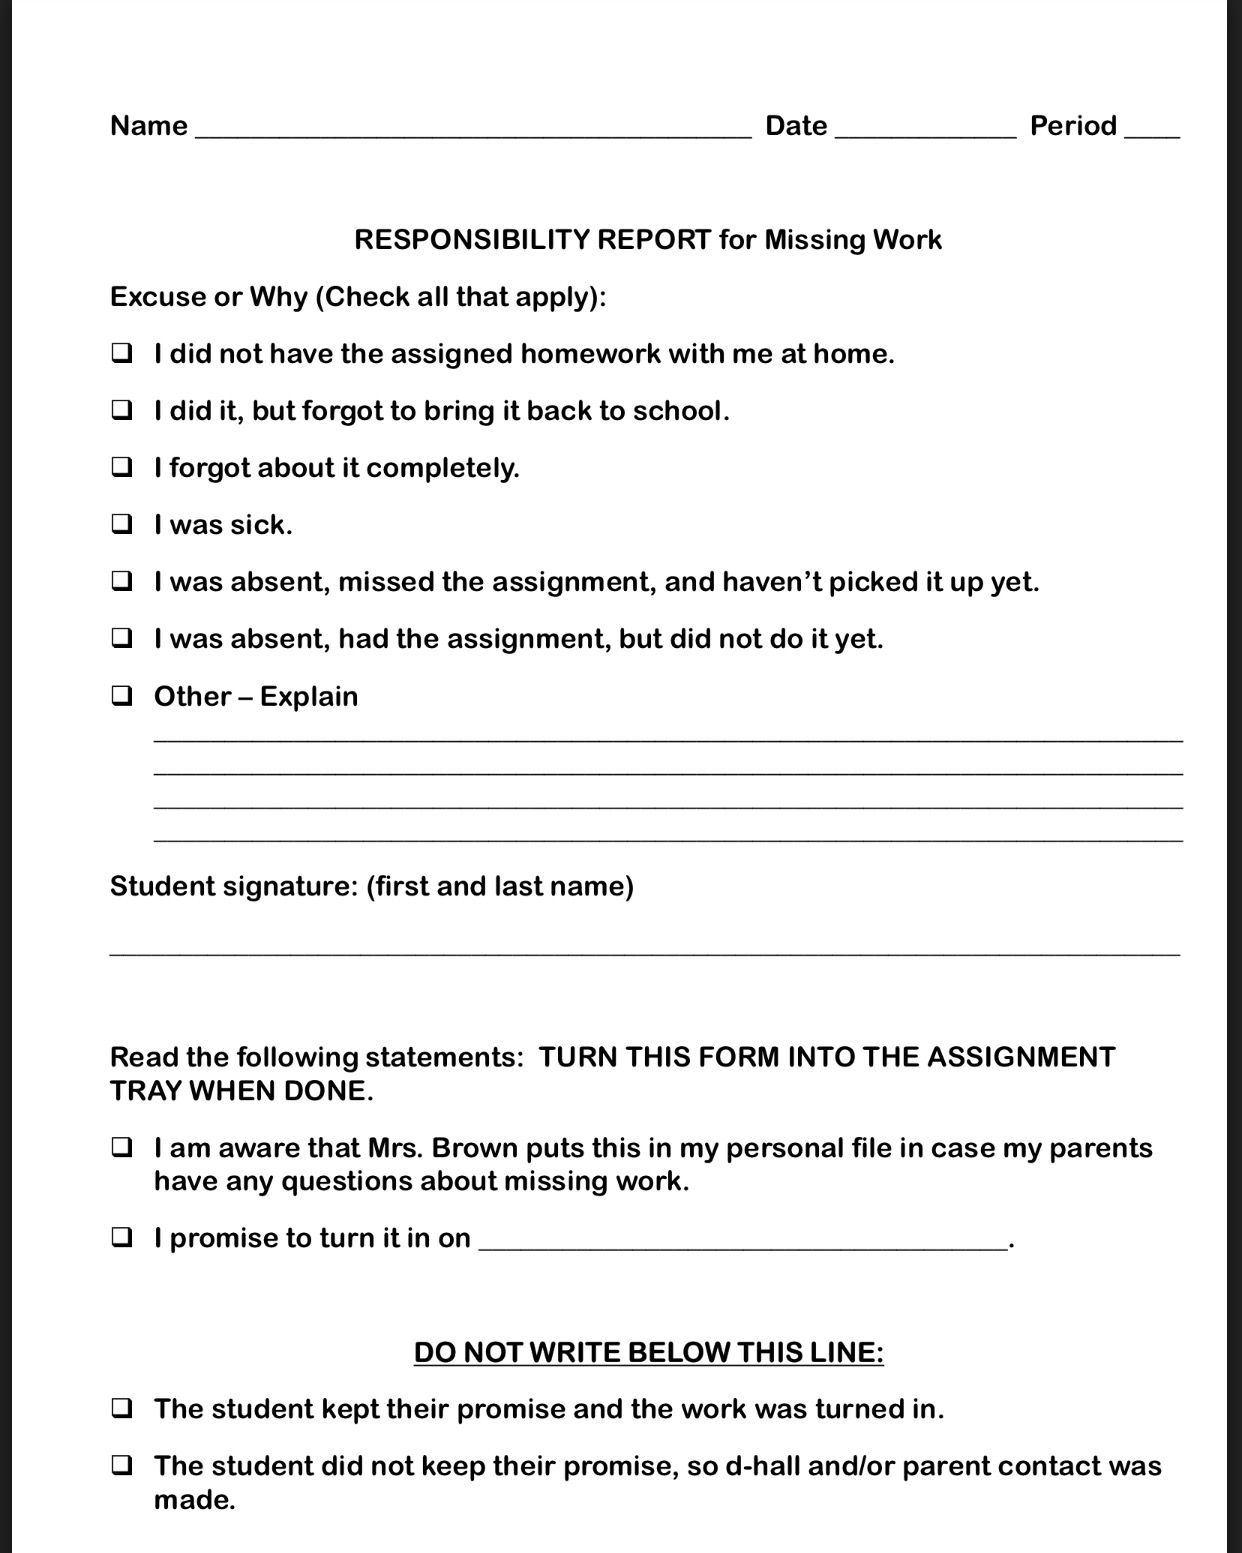 Missing Work Responsibility Report With Images